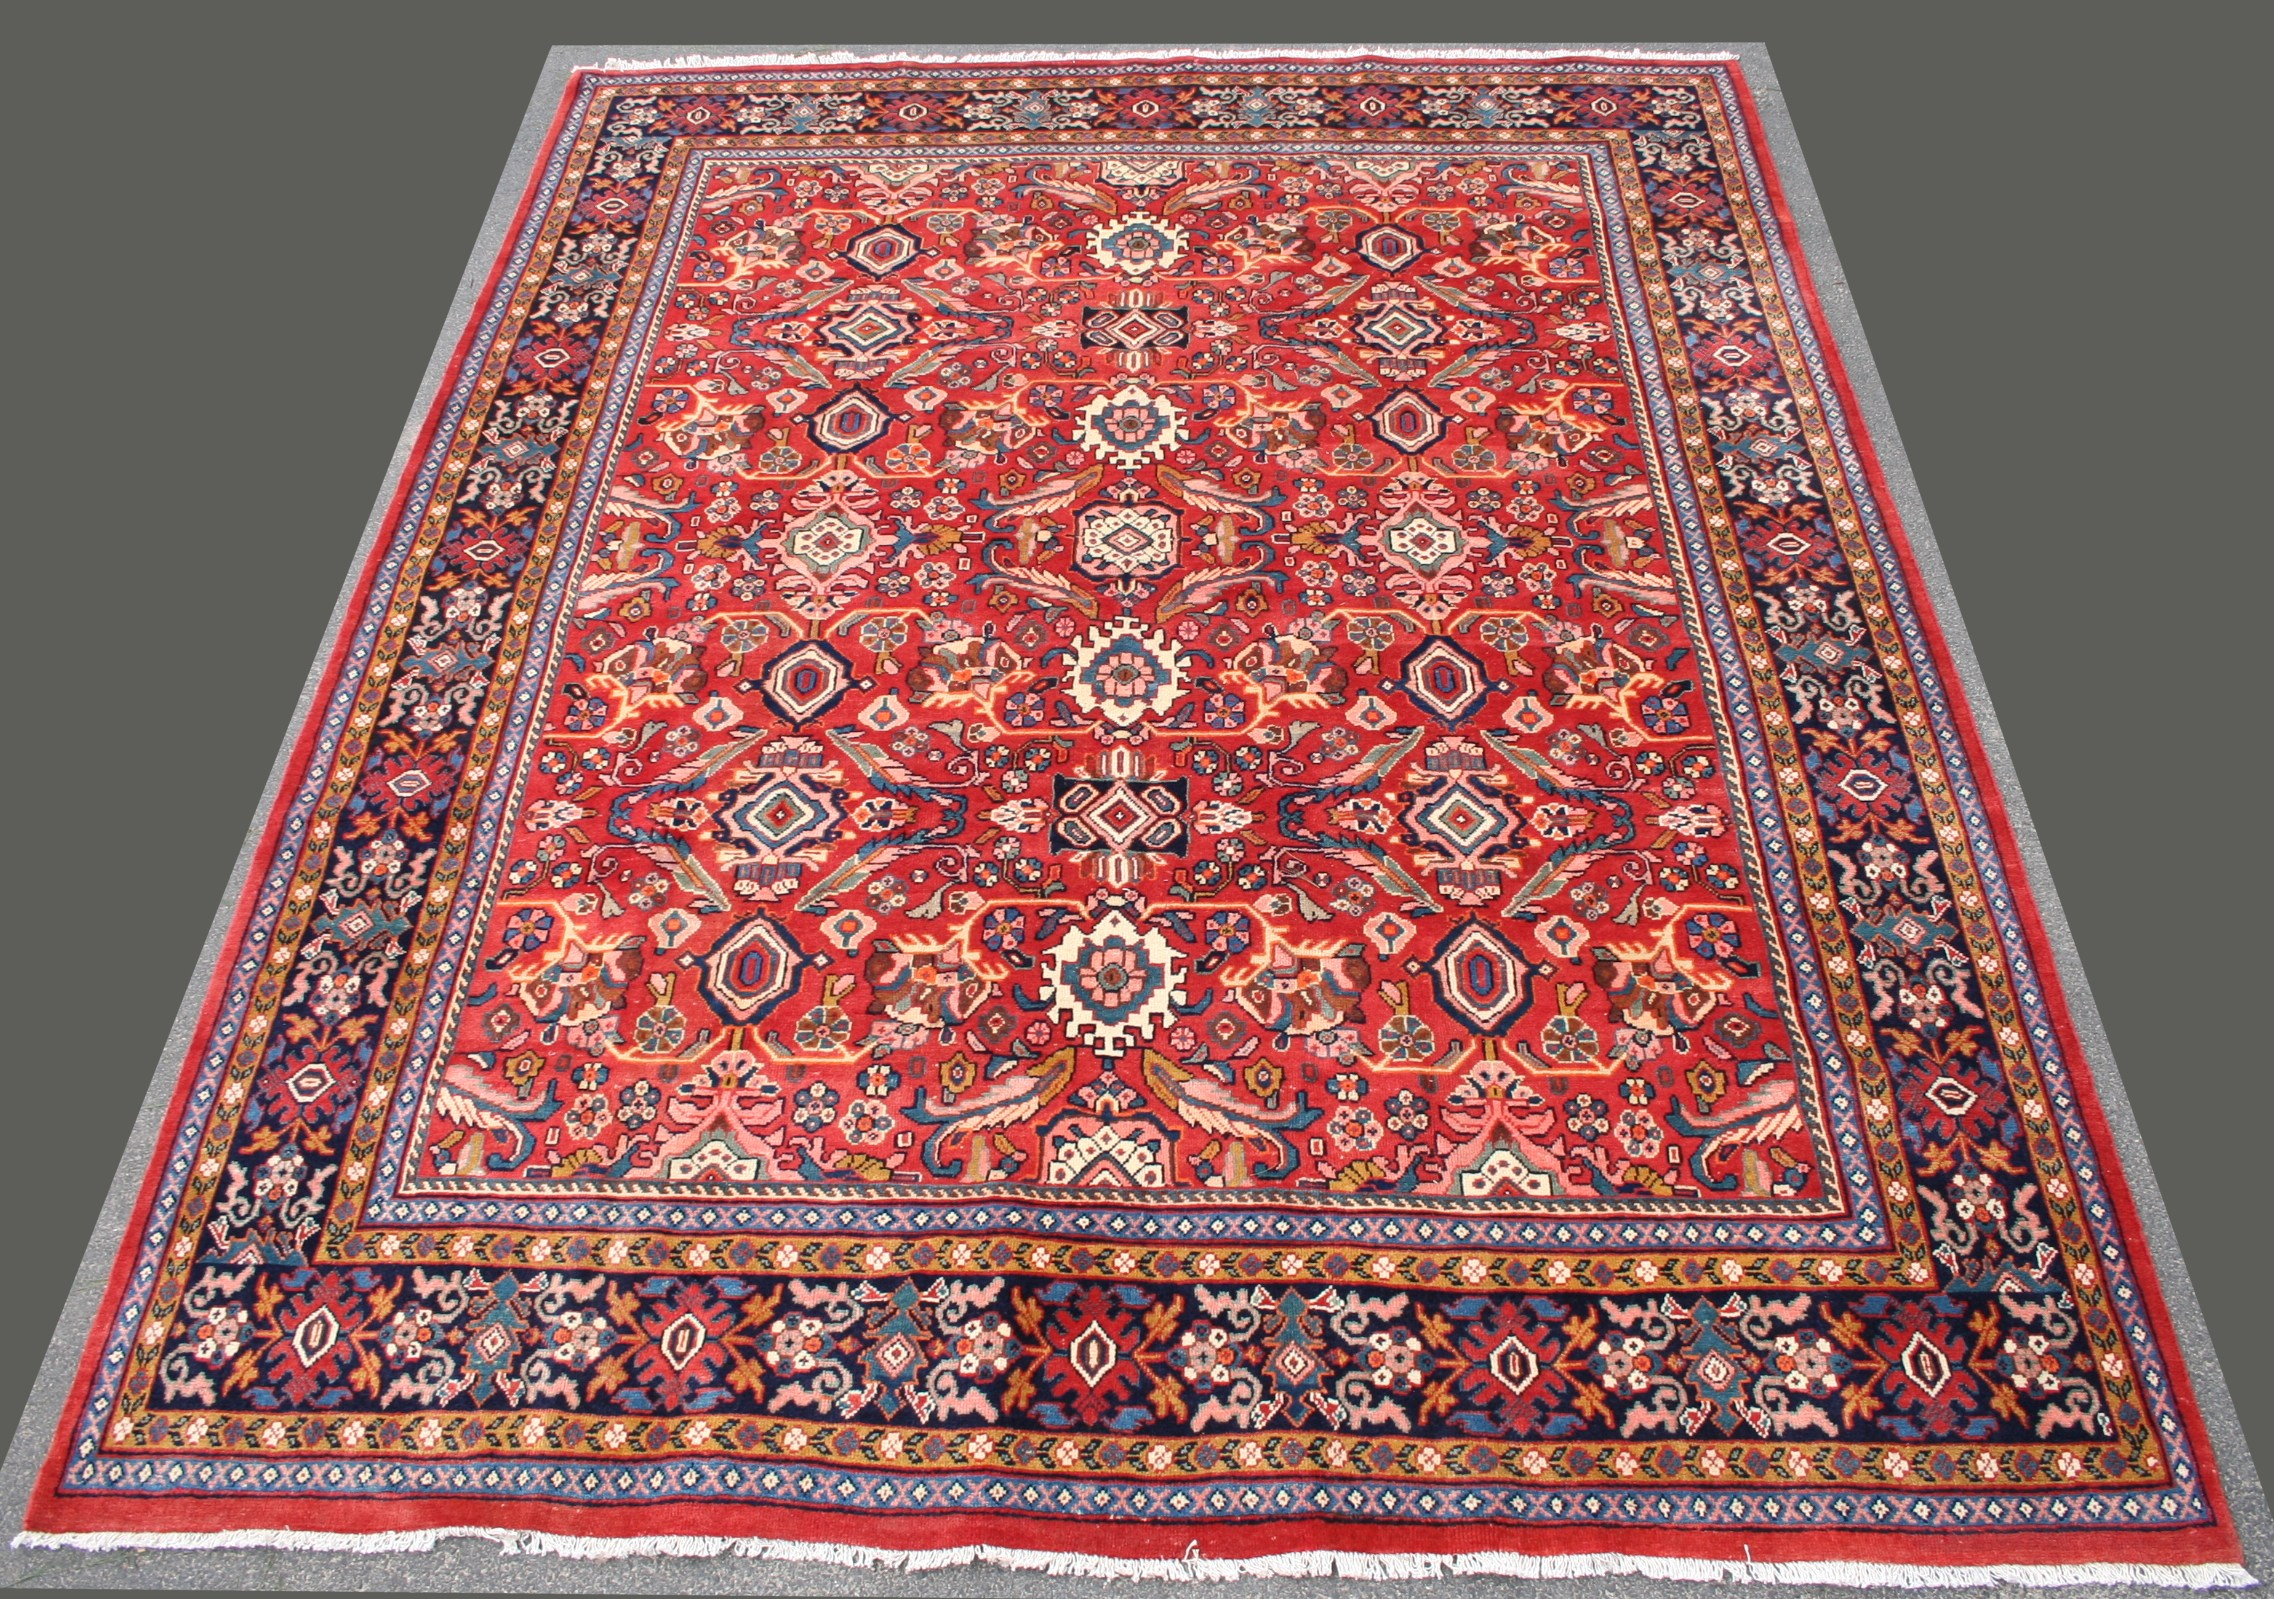 Antique Woven Middle Eastern Wool Rug